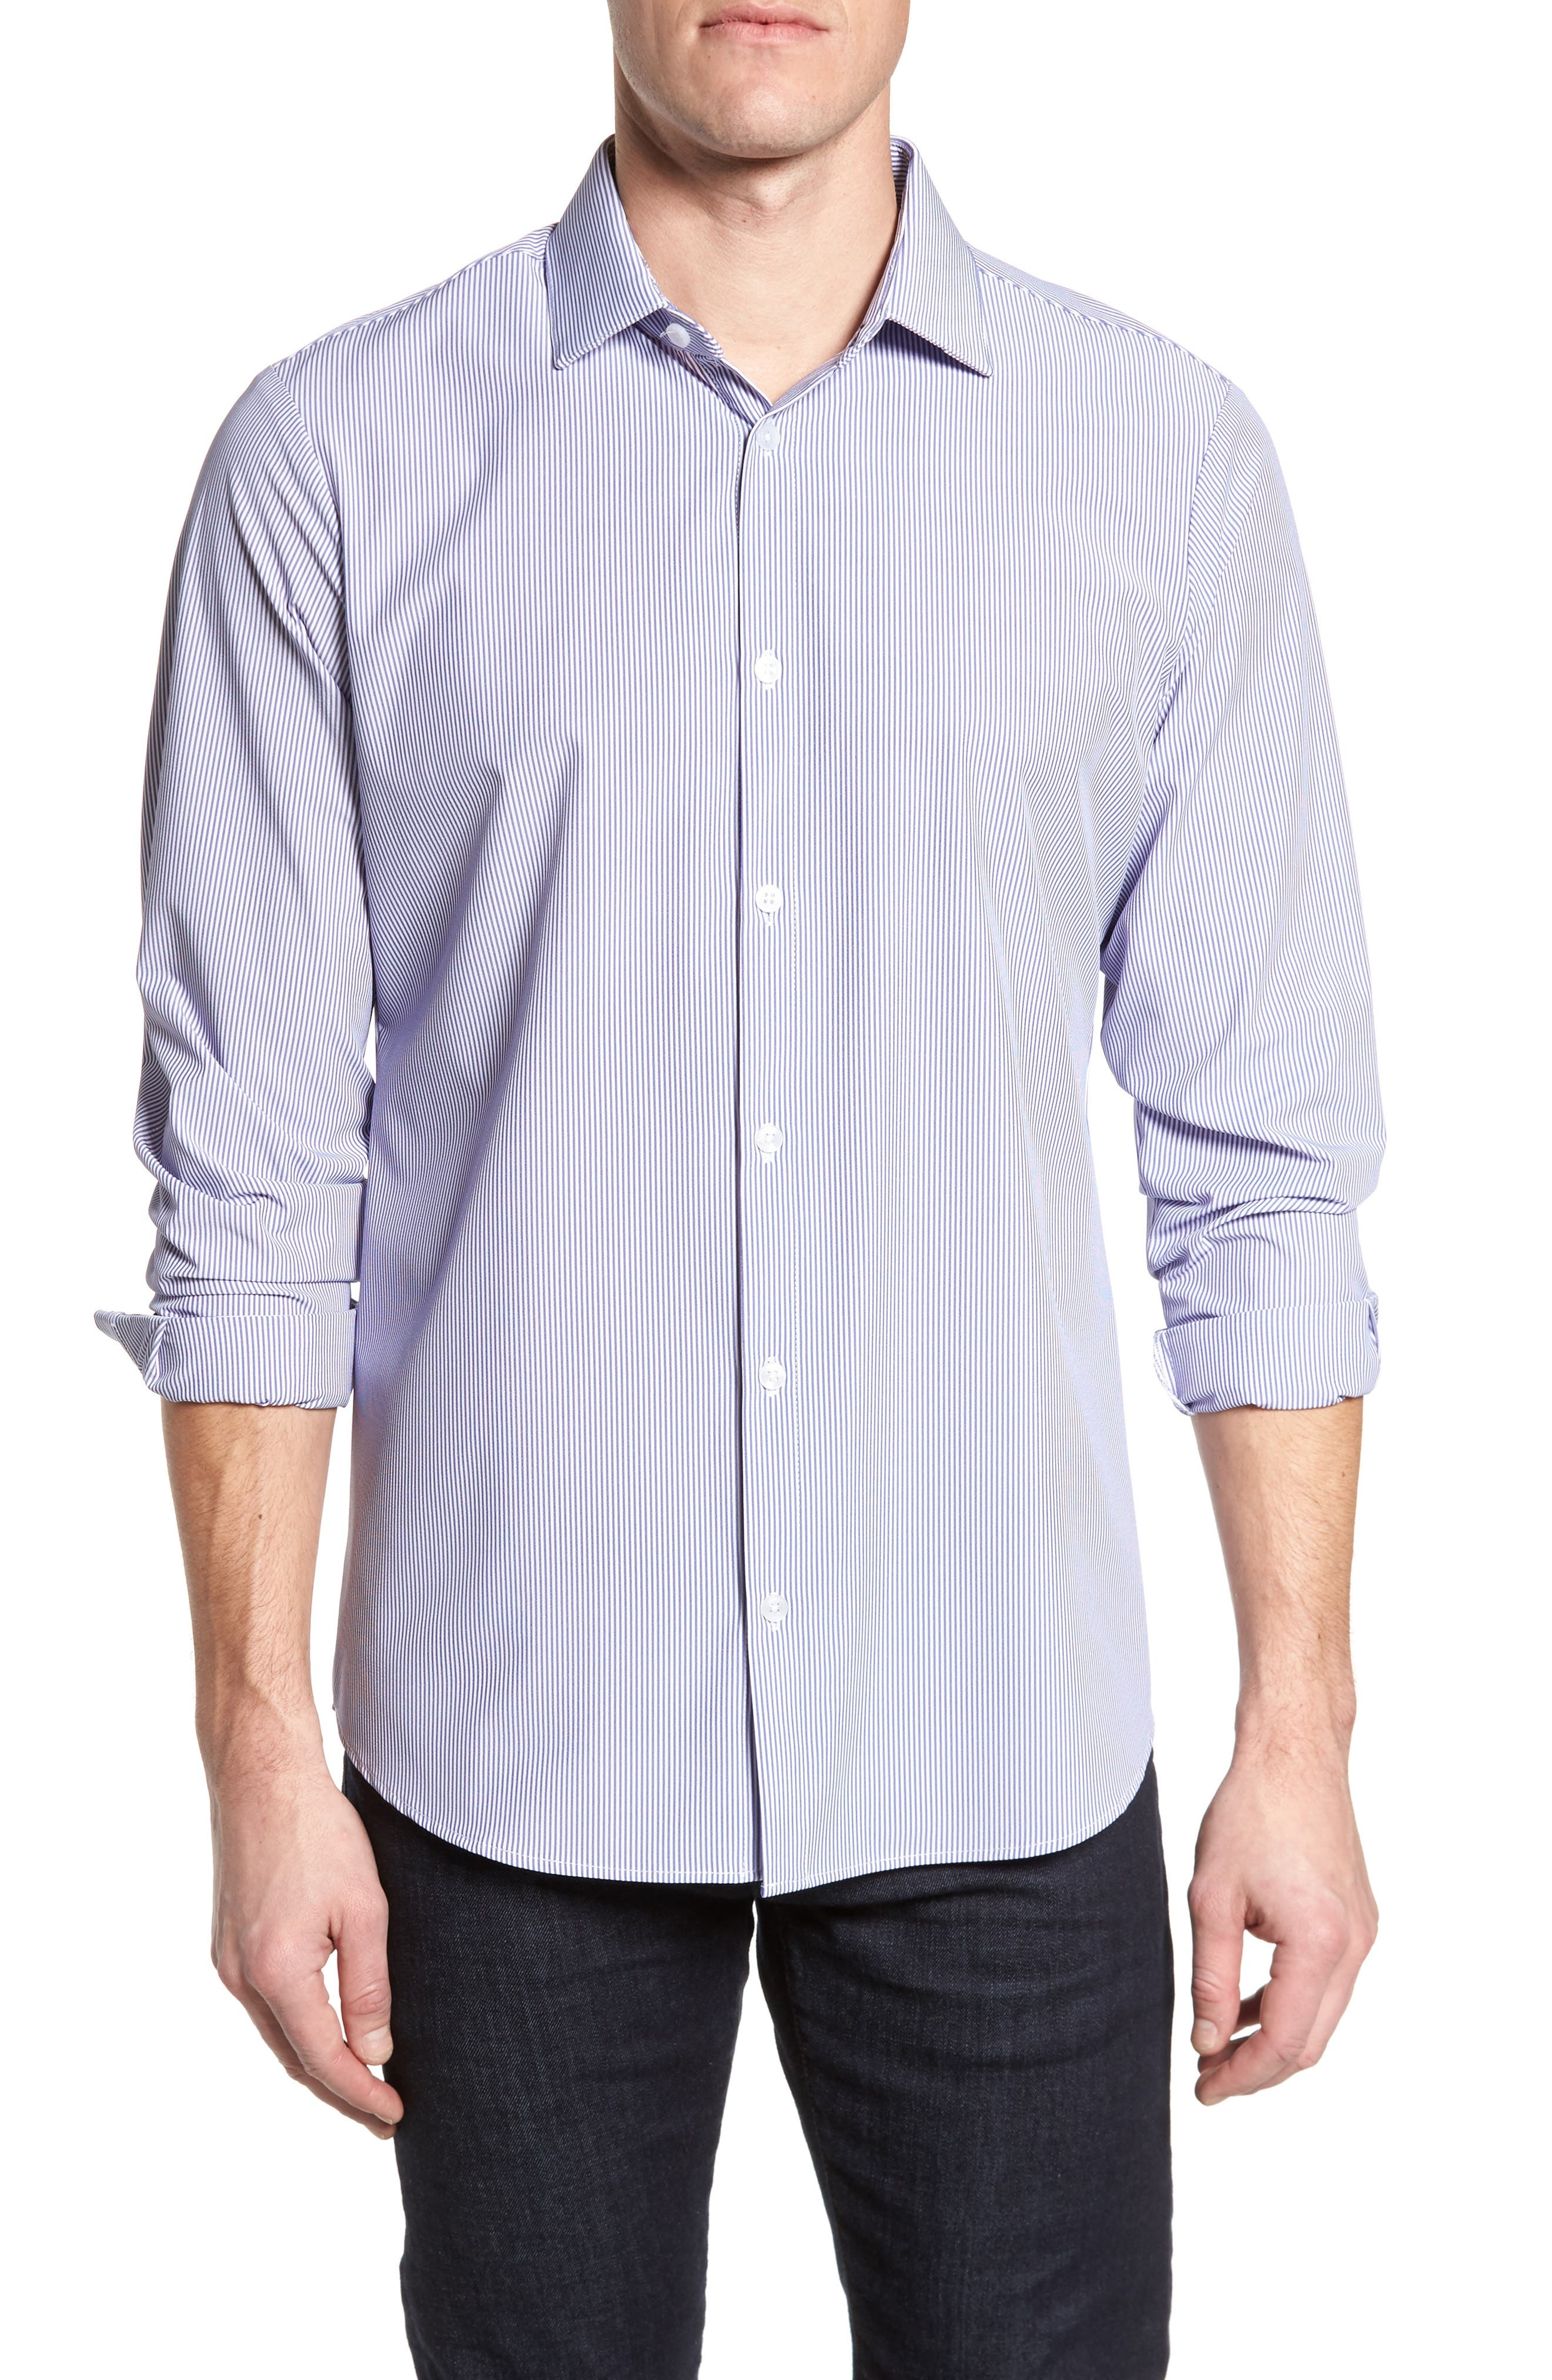 Newport Pinstripe Sport Shirt,                         Main,                         color,